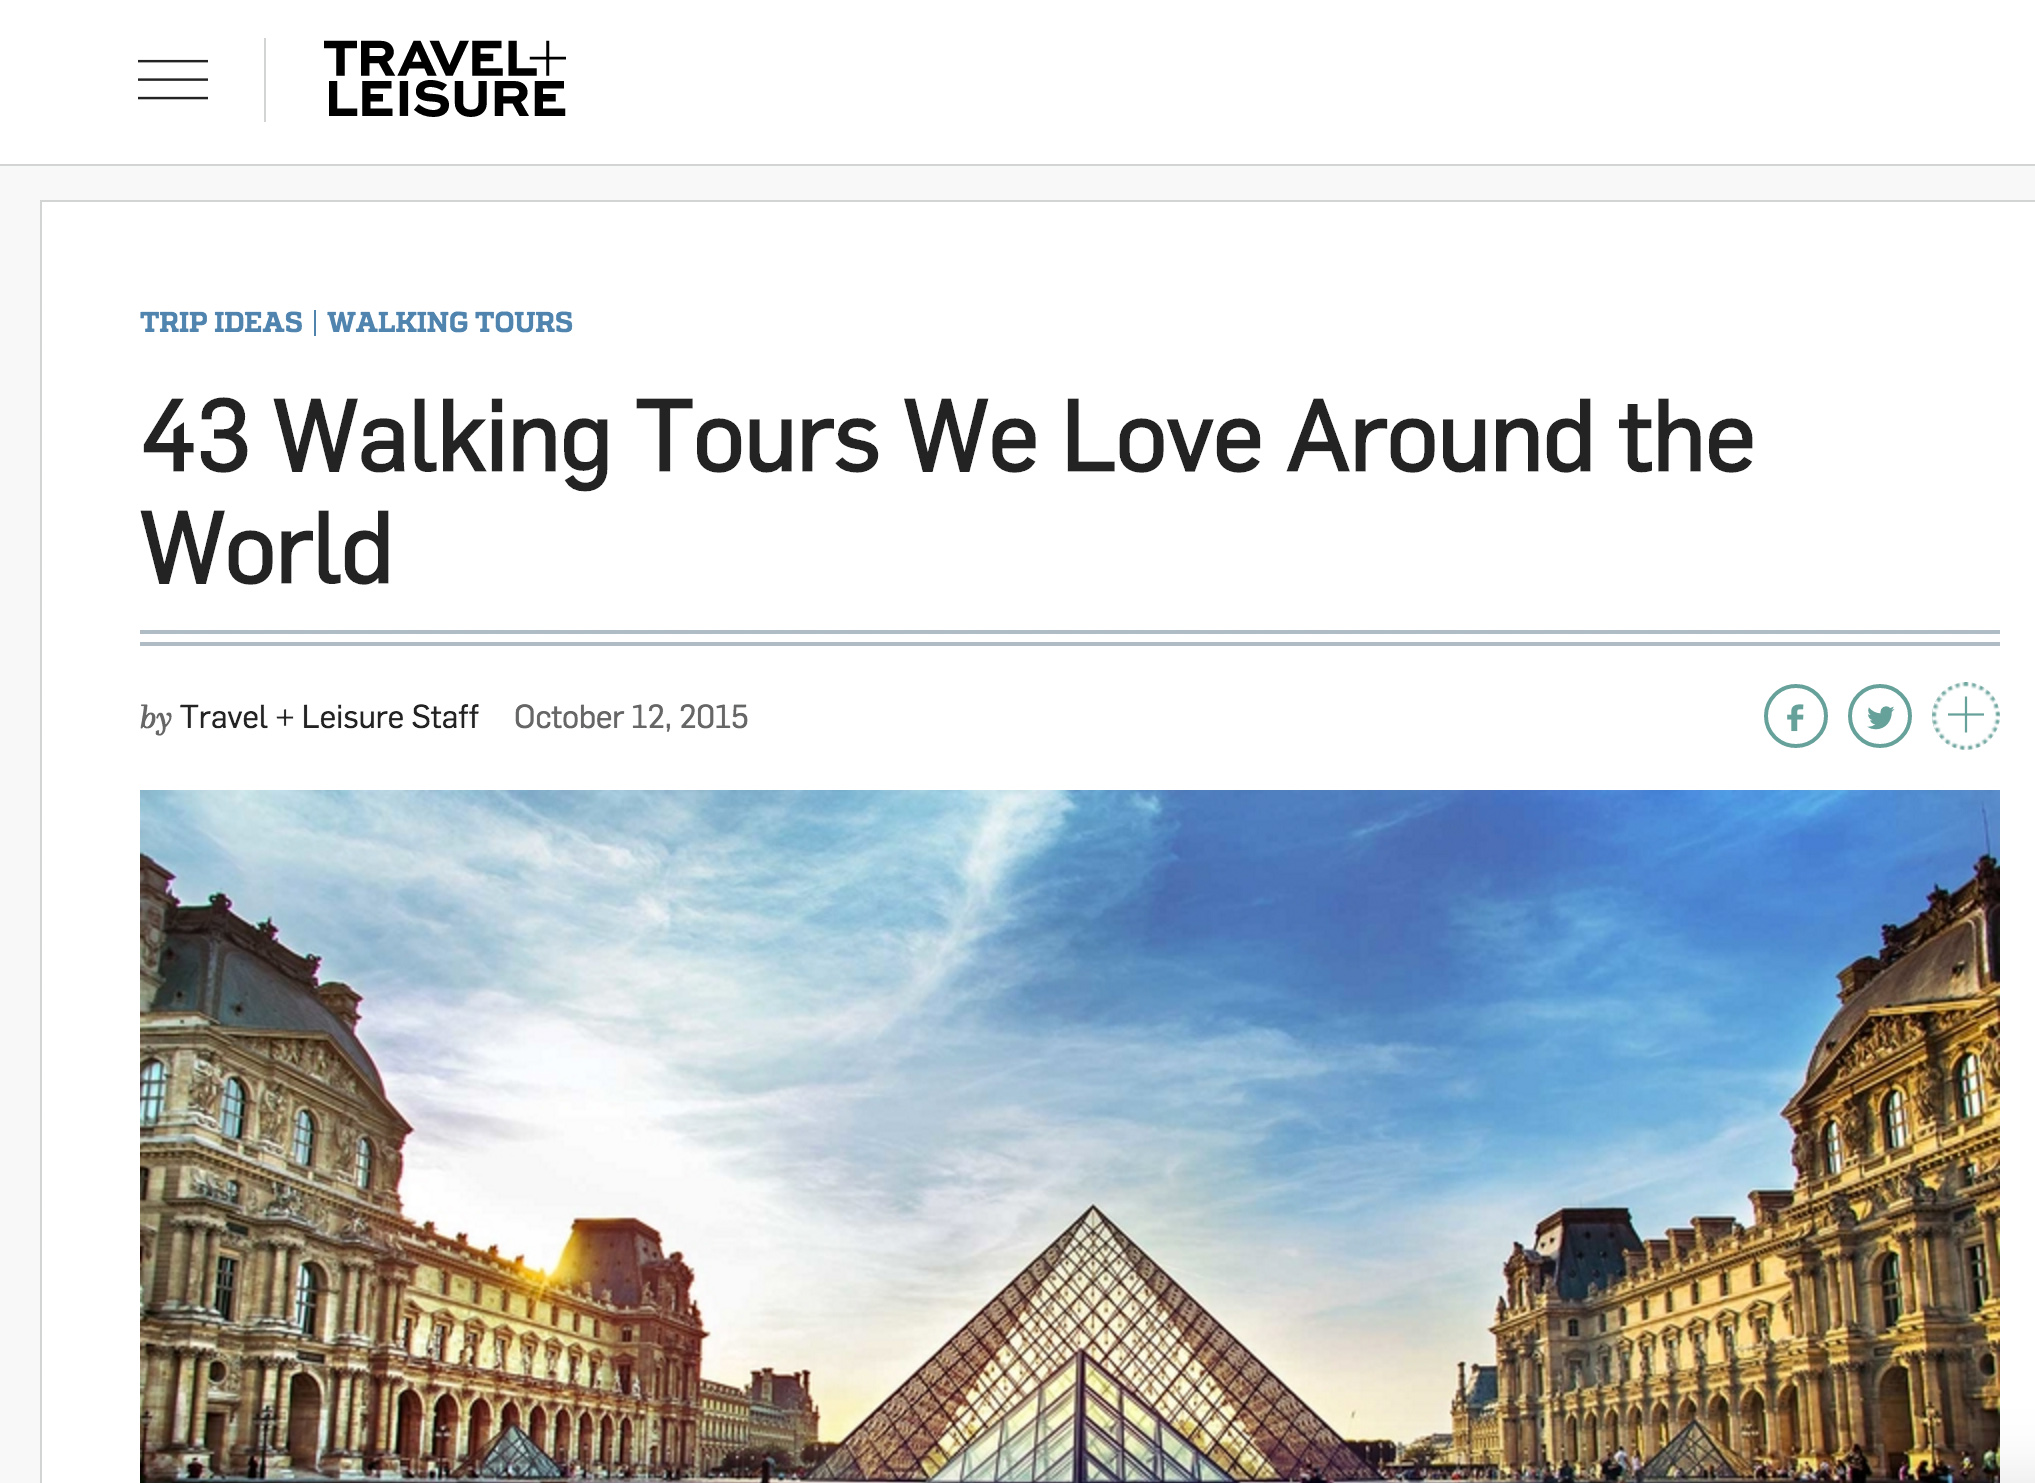 Travel & Leisure - Travel & Leisure named Amsterdam Photosafari as one of the best walking tours IN THE WORLD!